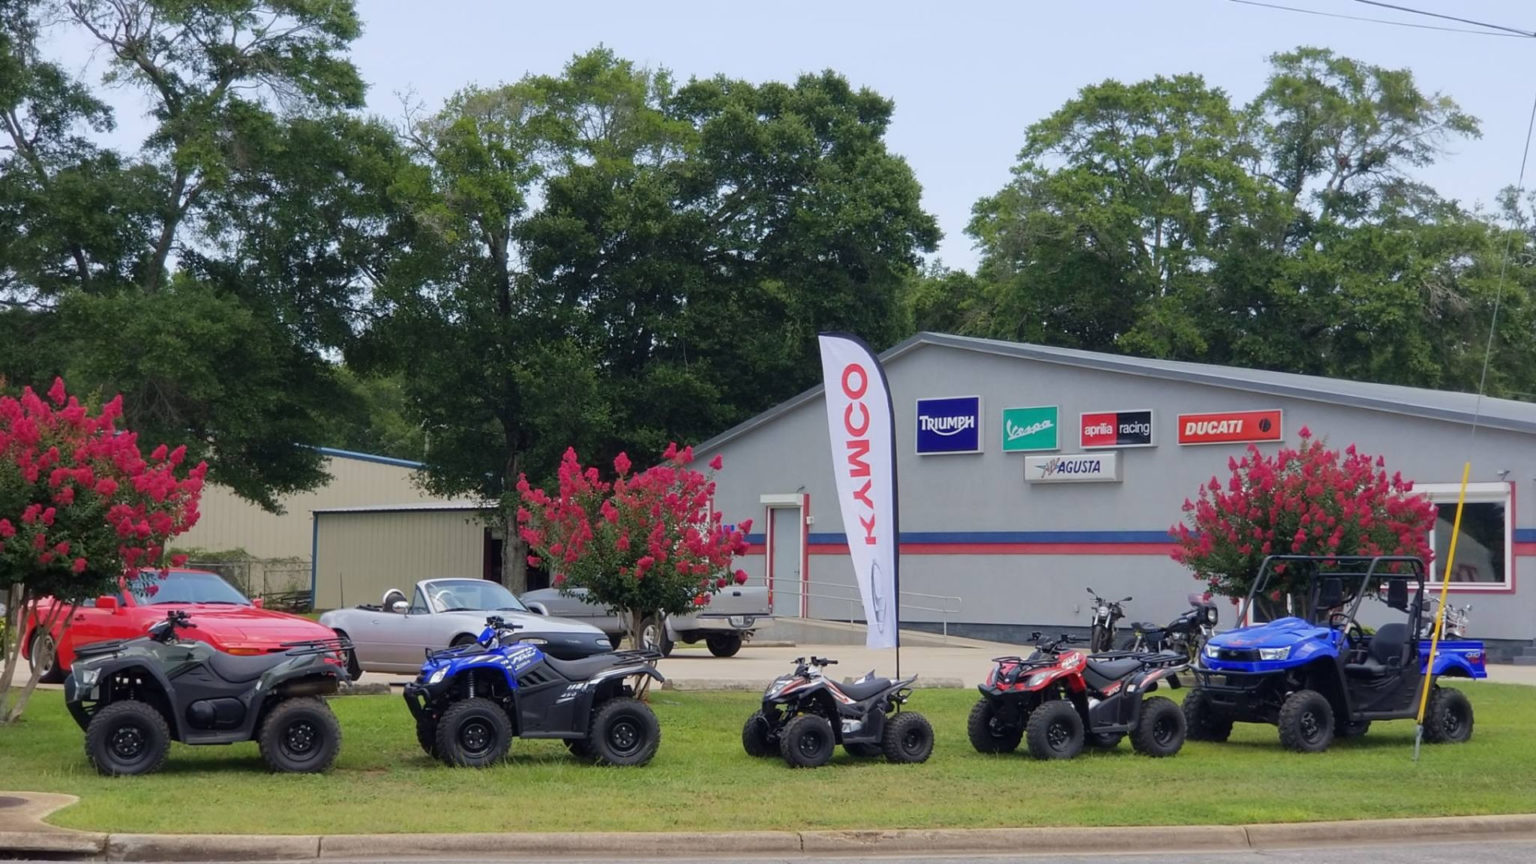 Mic: New Motorcycle Sales Up Double Digits In All Categories